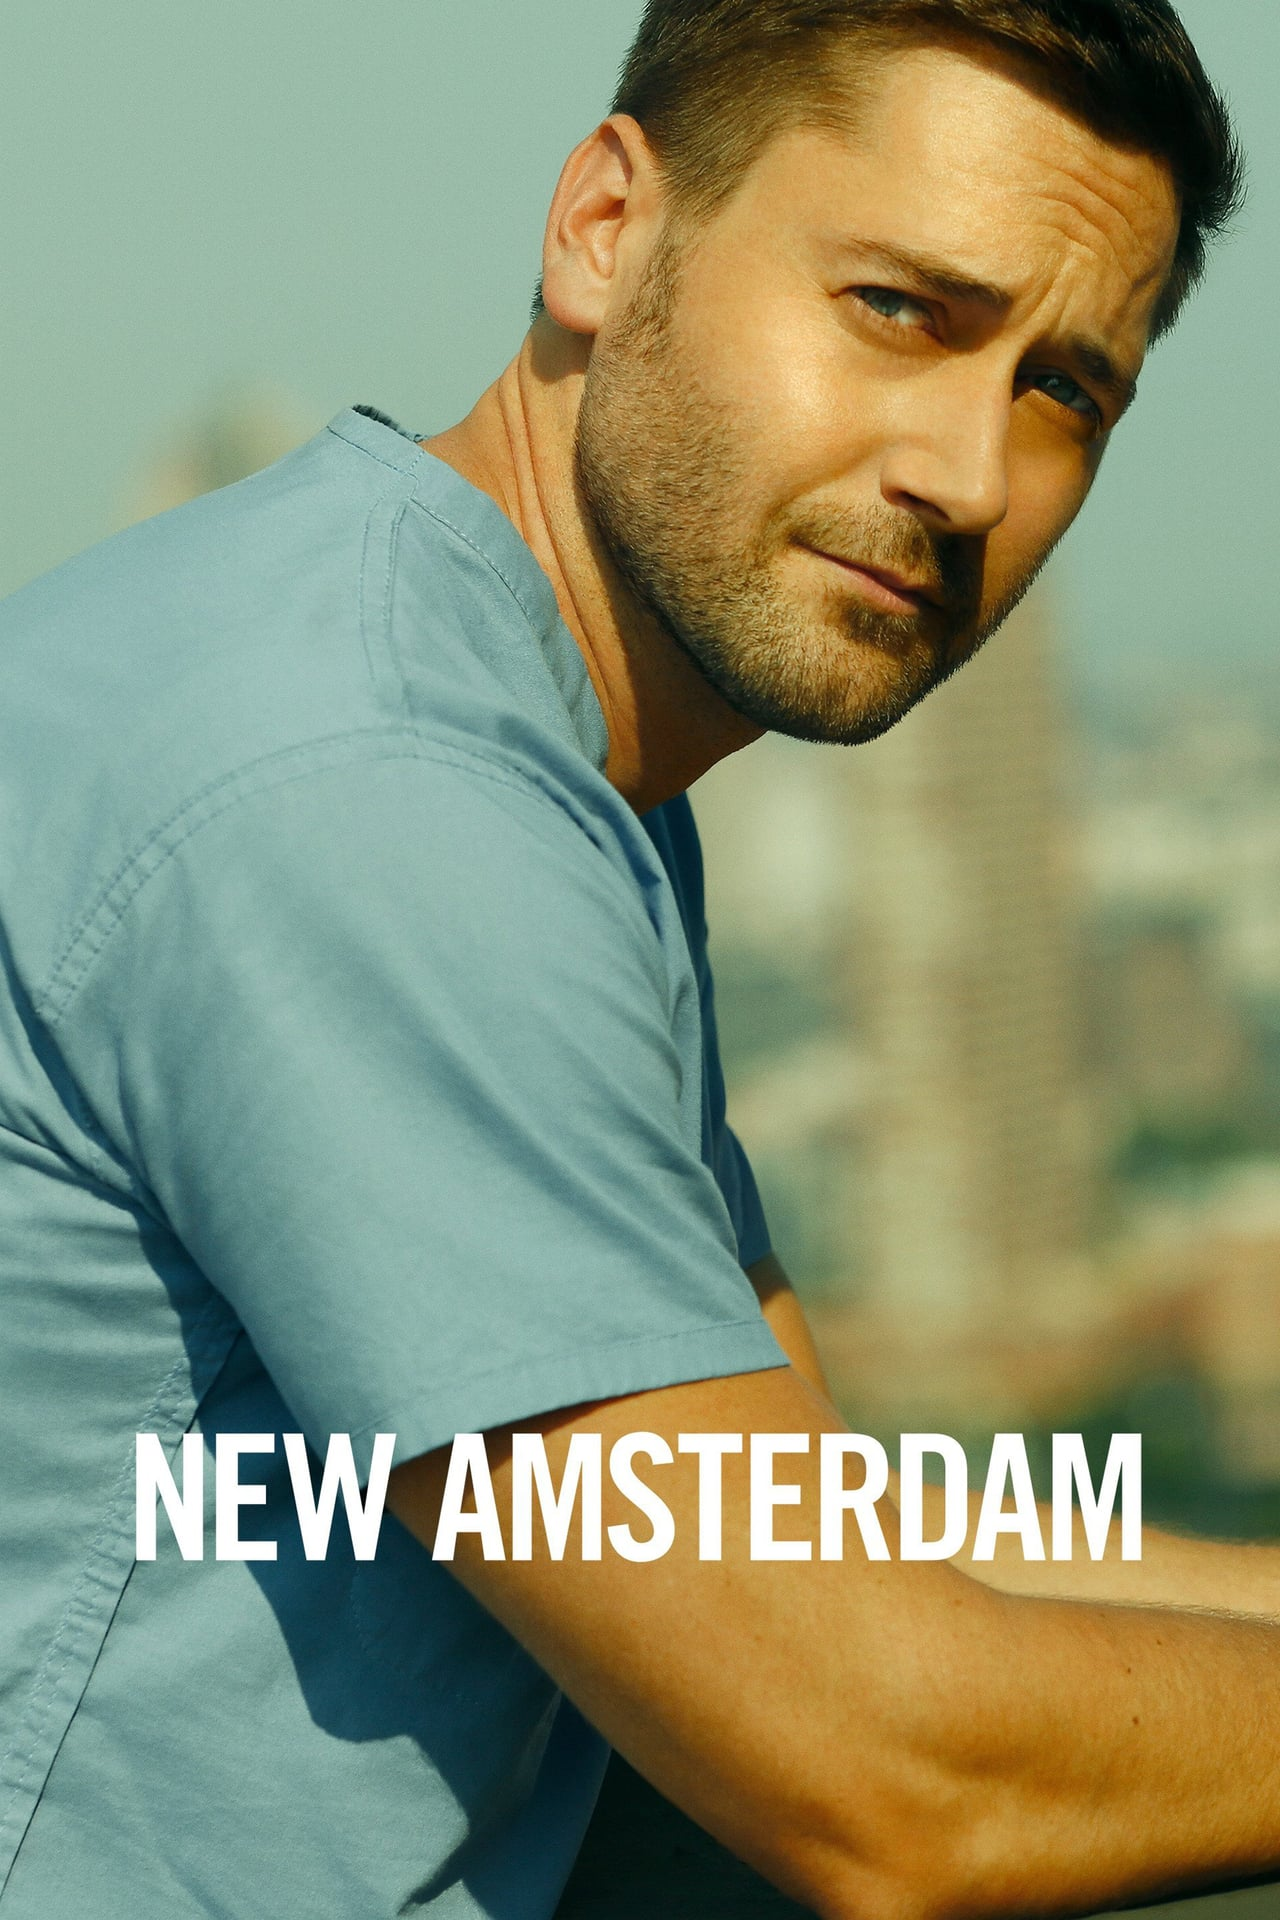 New Amsterdam (season 3)